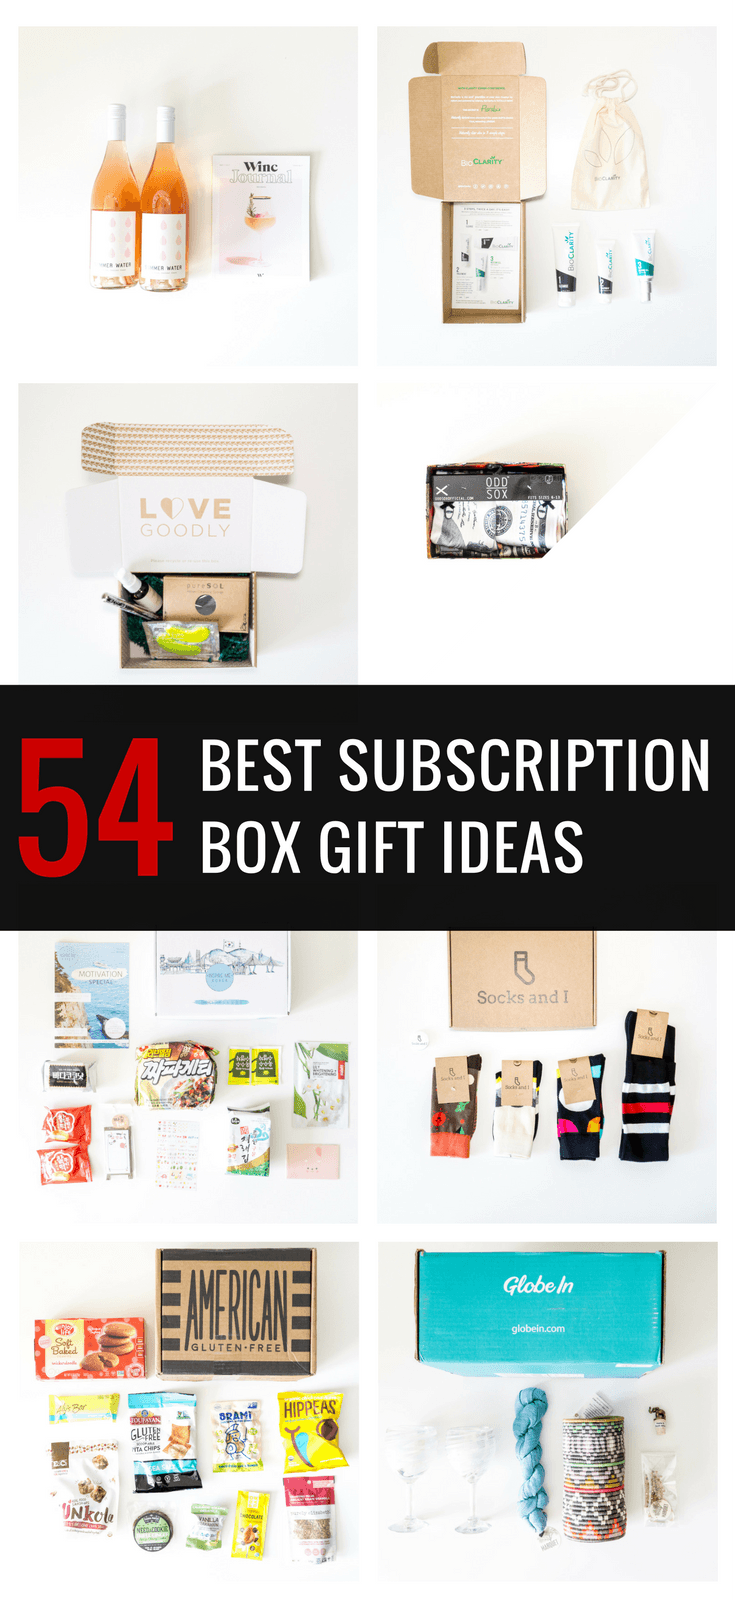 60 Subscription Box Gift Ideas For Every Type Of Person